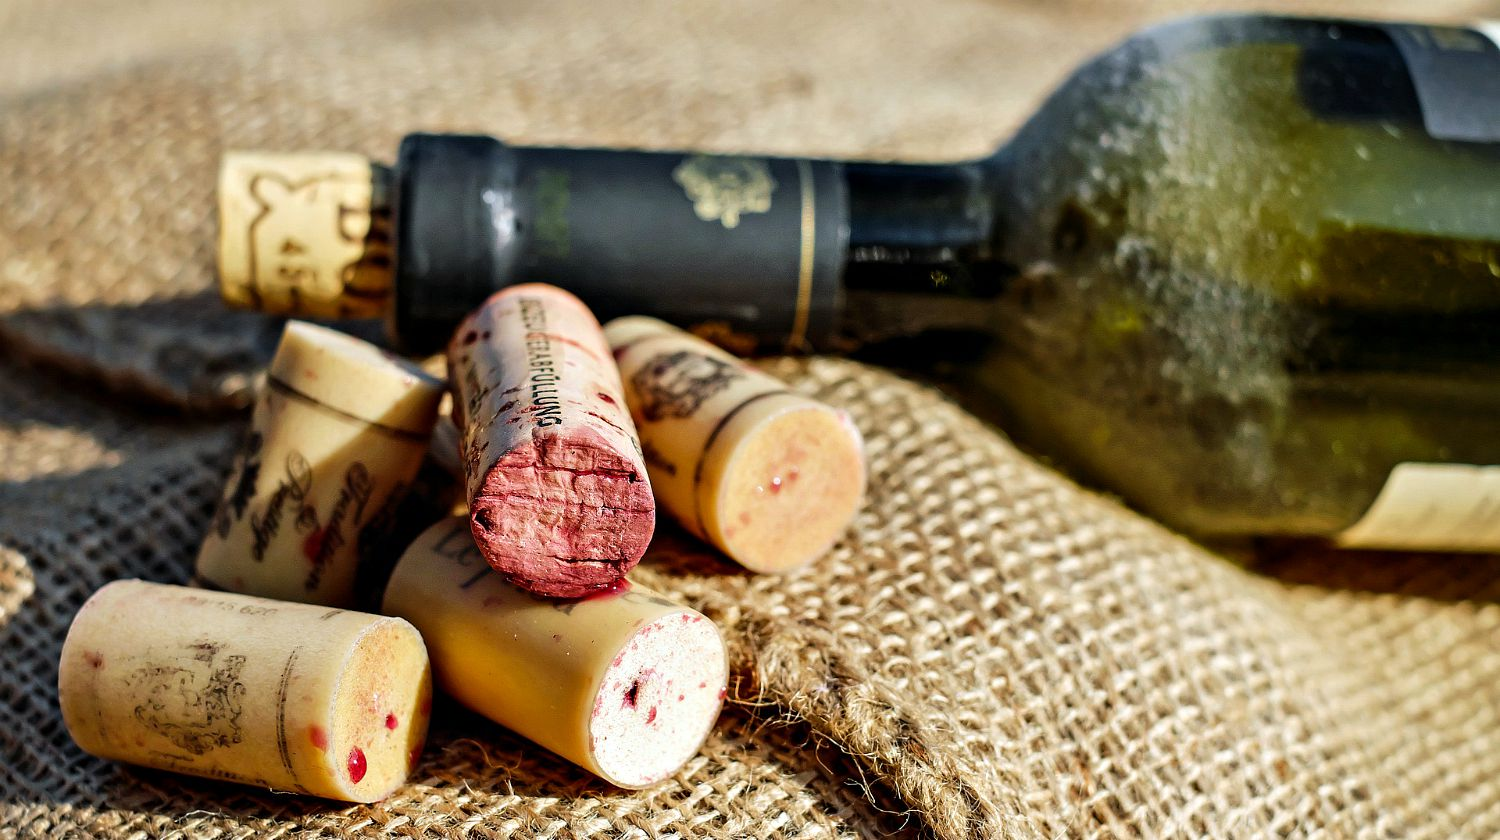 43 More Diy Wine Cork Crafts Ideas Diy Projects